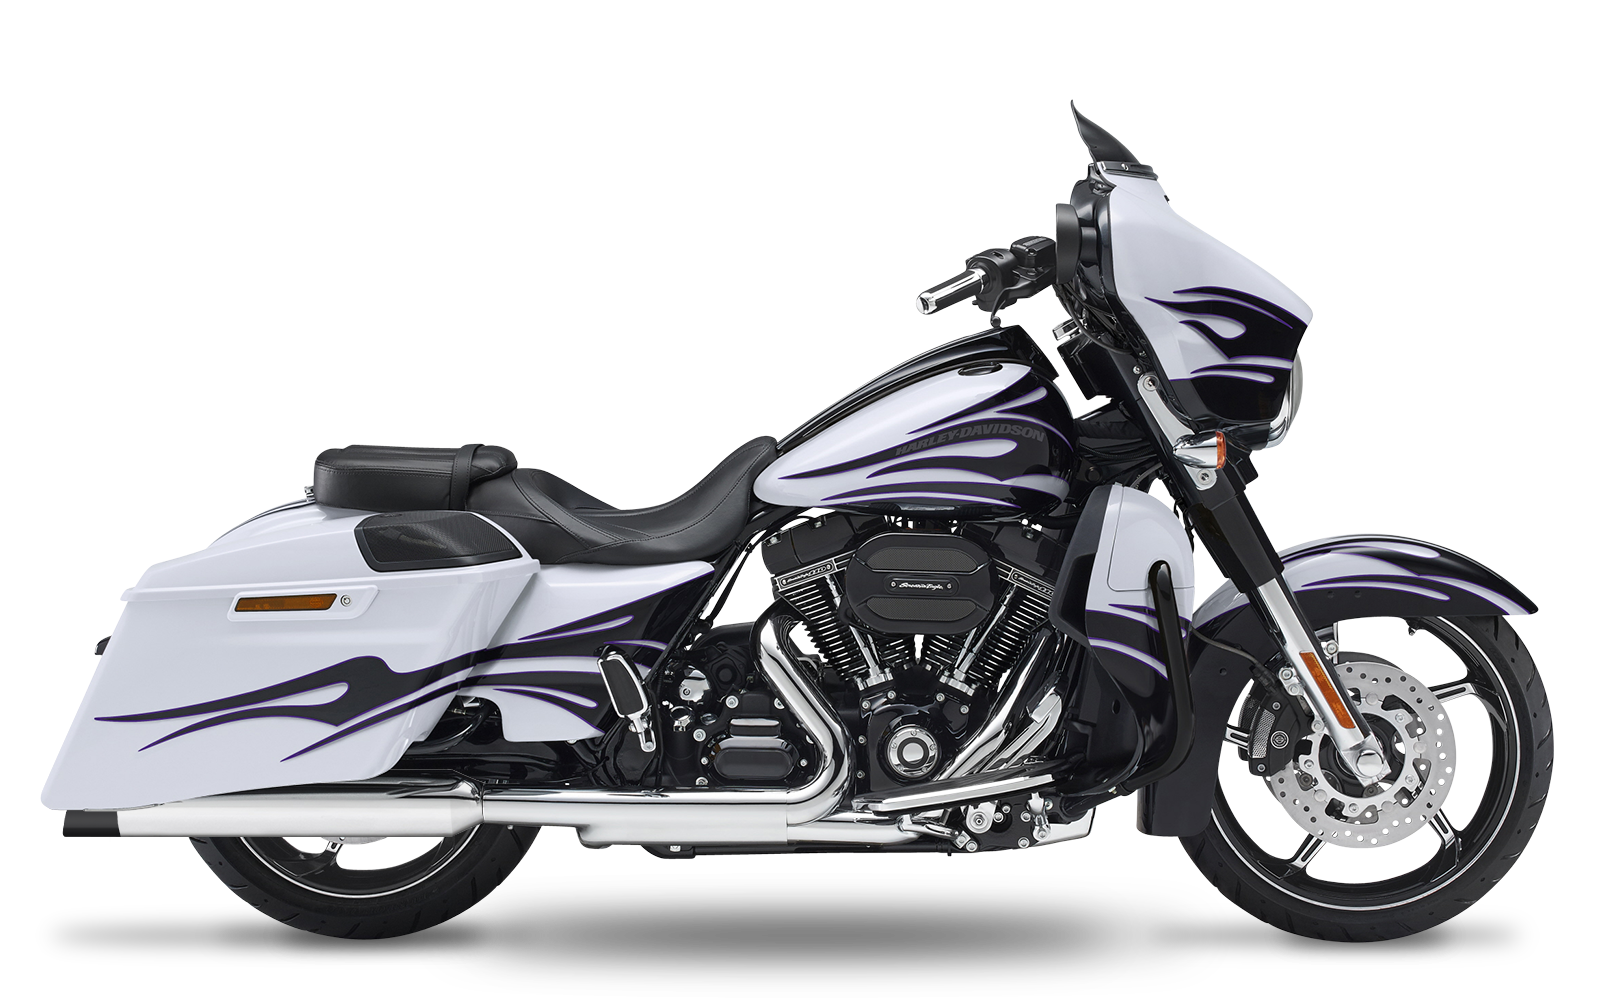 Touring - Road Glide Special - ME107 - 2018 - Slipons